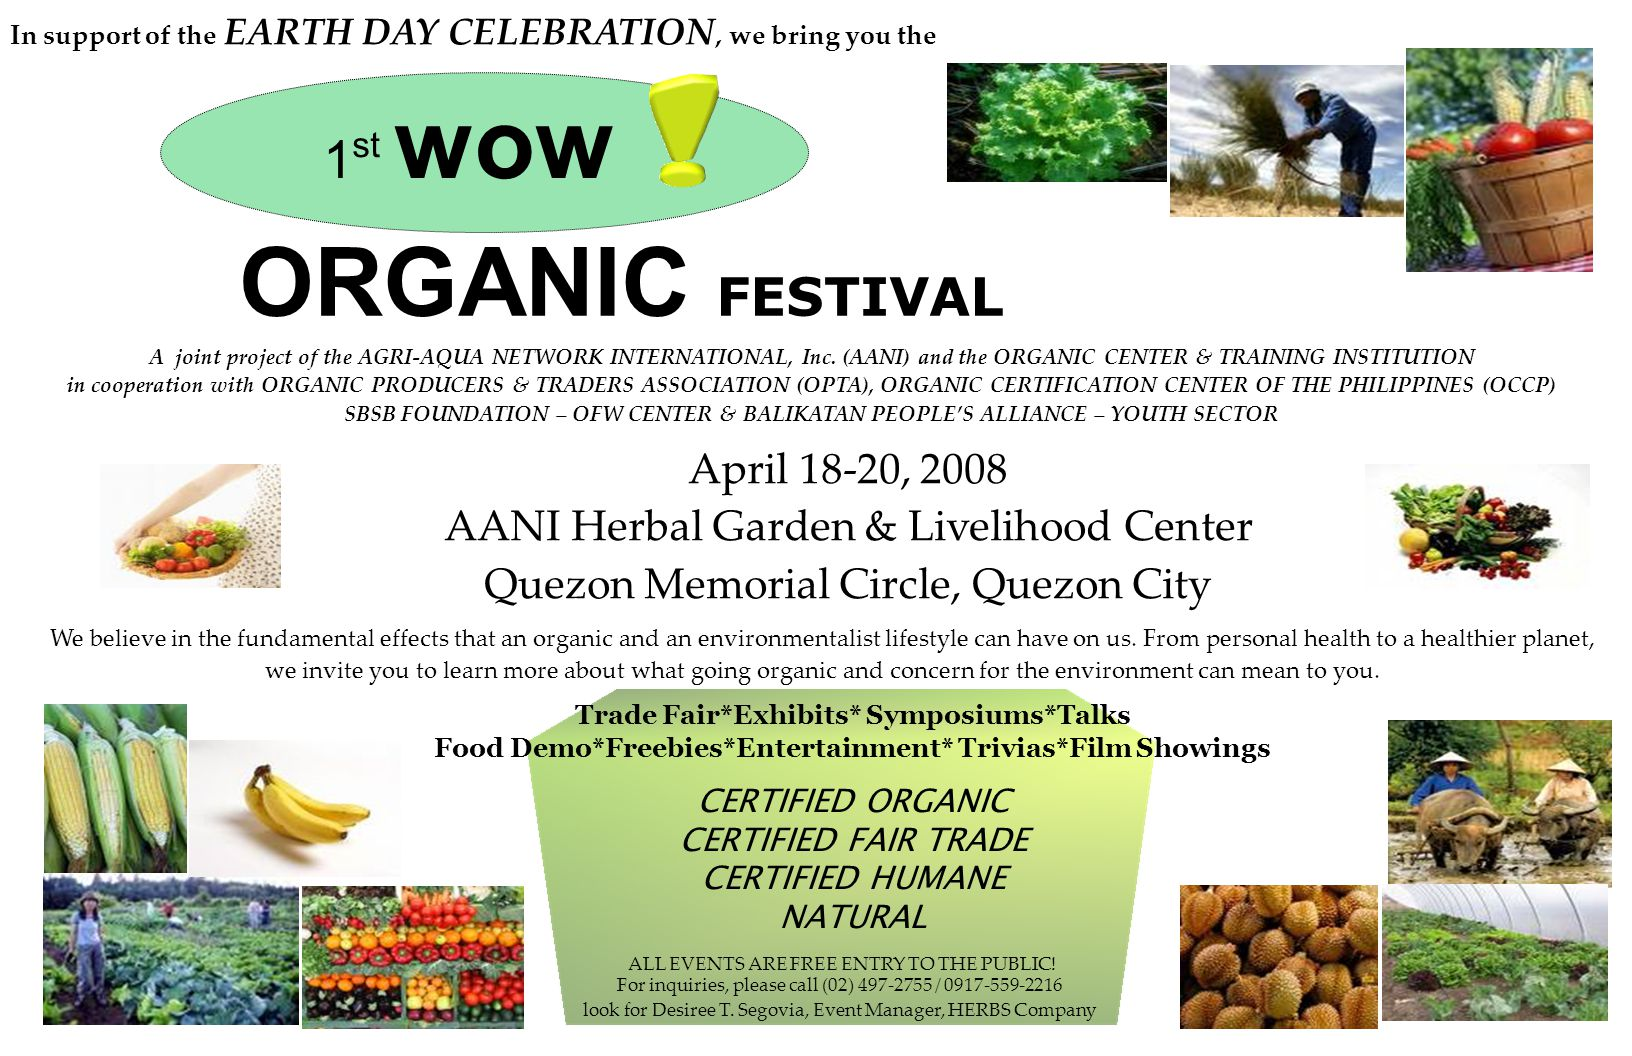 1 st wow ORGANIC FESTIVAL April 18-20, 2008 AANI Herbal Garden & Livelihood Center Quezon Memorial Circle, Quezon City We believe in the fundamental effects that an organic and an environmentalist lifestyle can have on us.